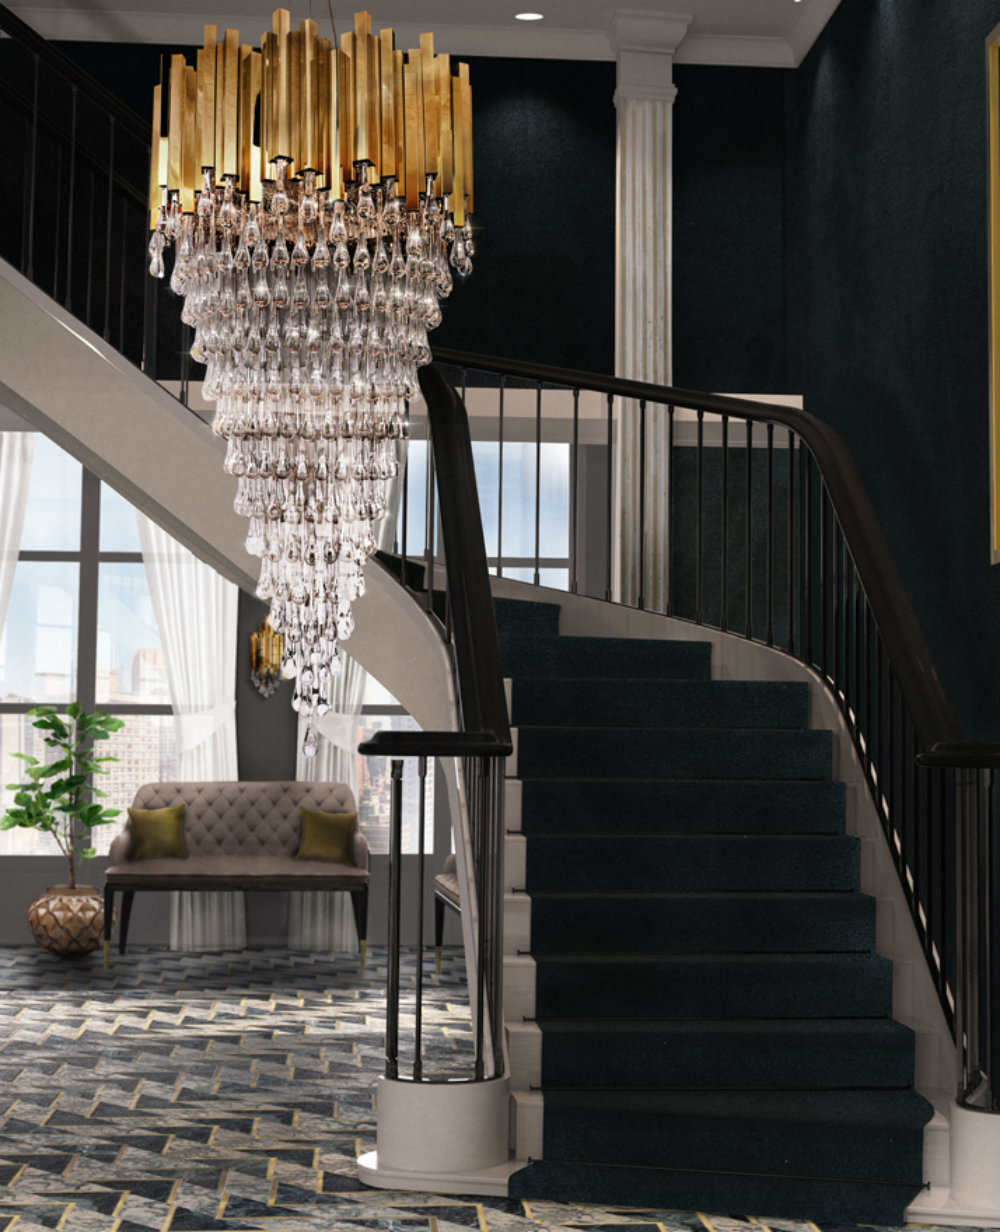 Here Is Why You Need These Amazing Chandeliers For Your Entryway entryway Here Is Why You Need These Amazing Chandeliers For Your Entryway Here Is Why You Need These Amazing Chandeliers For Your Entryway 2